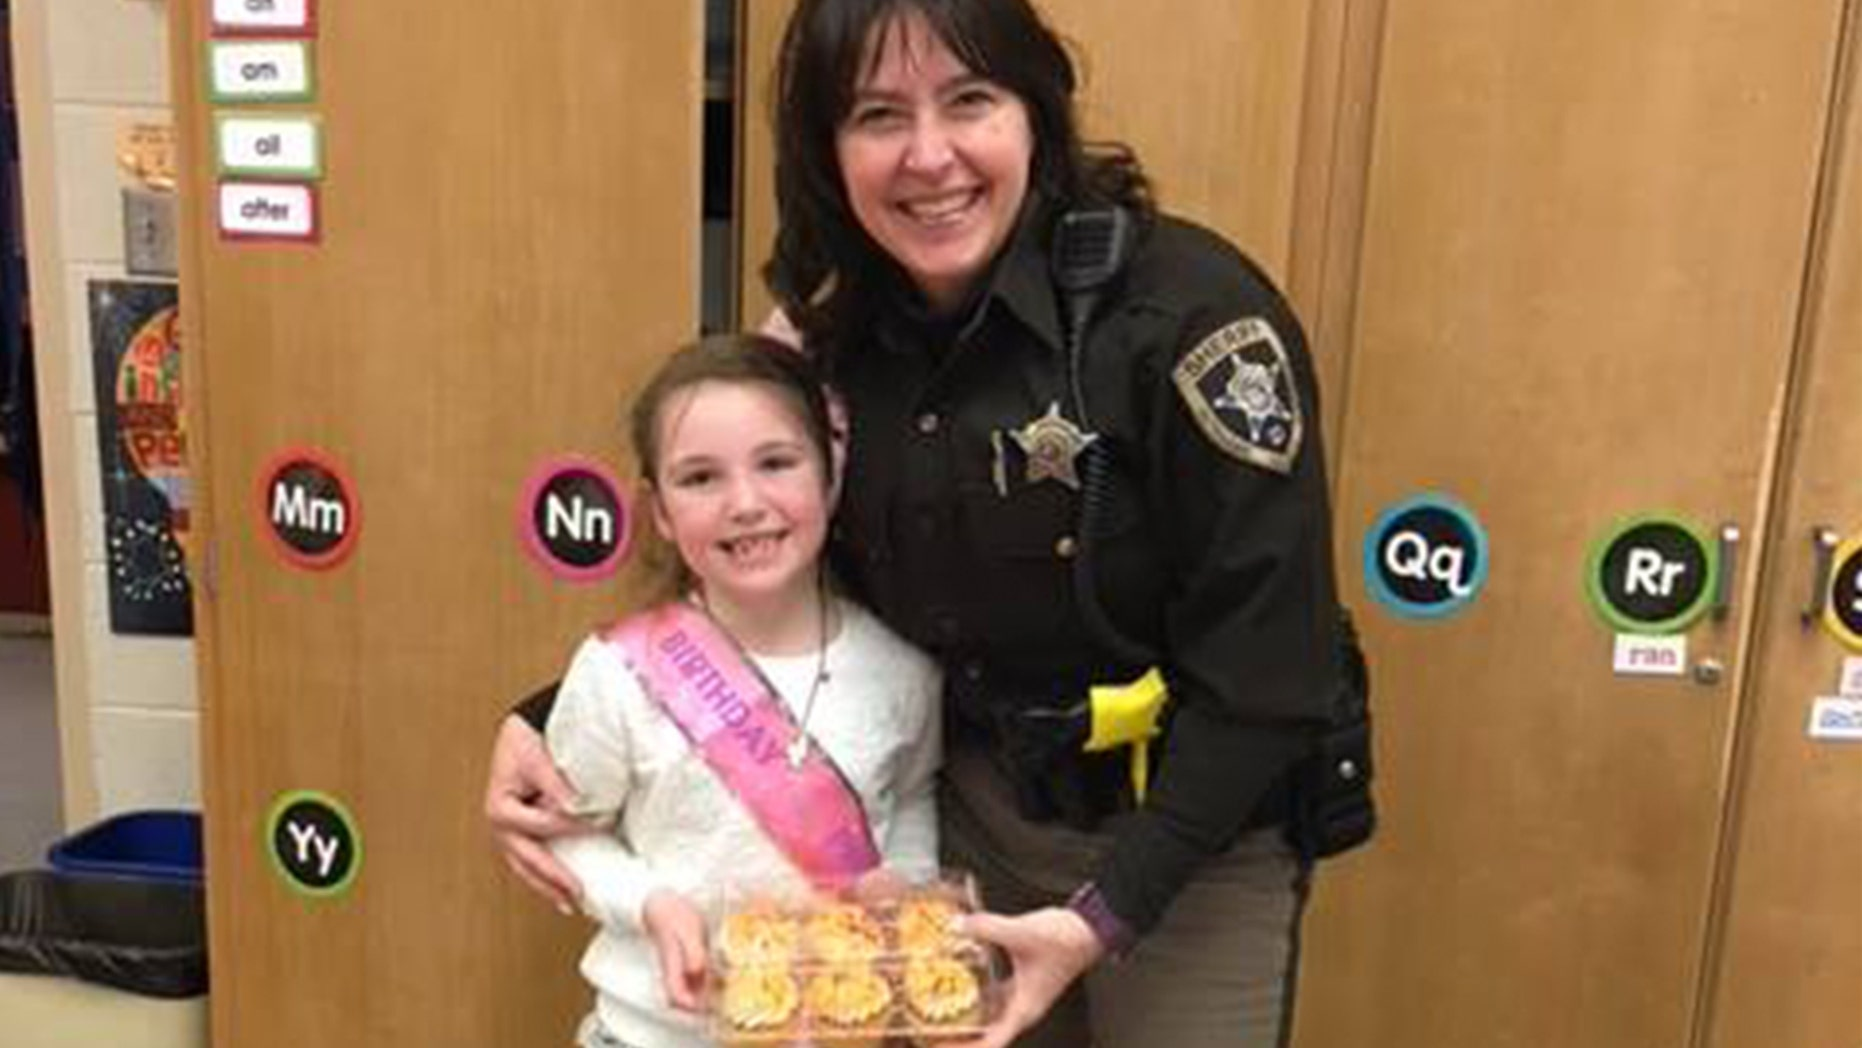 A sheriff's deputy bought cupcakes for a little girl after hers were destroyed in a car wreck.